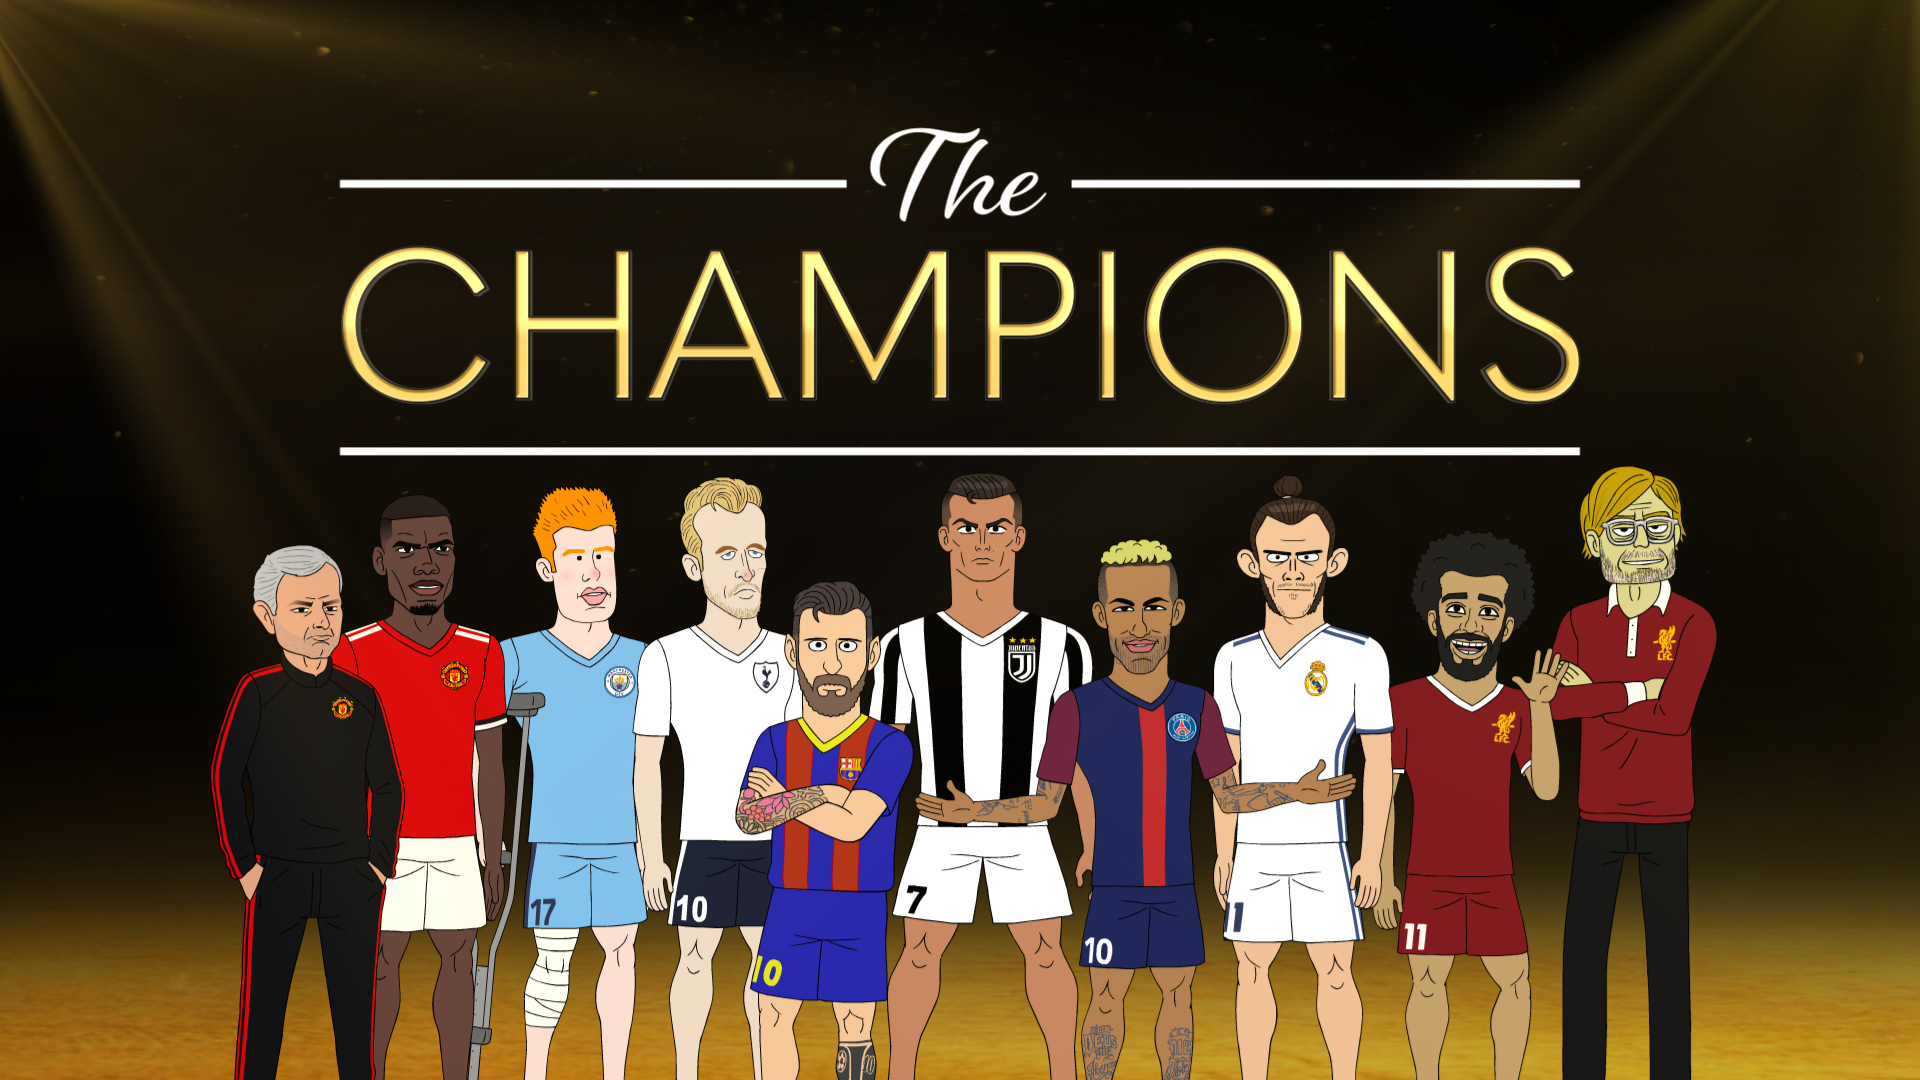 the champions episode 1 bleacher report latest news videos and